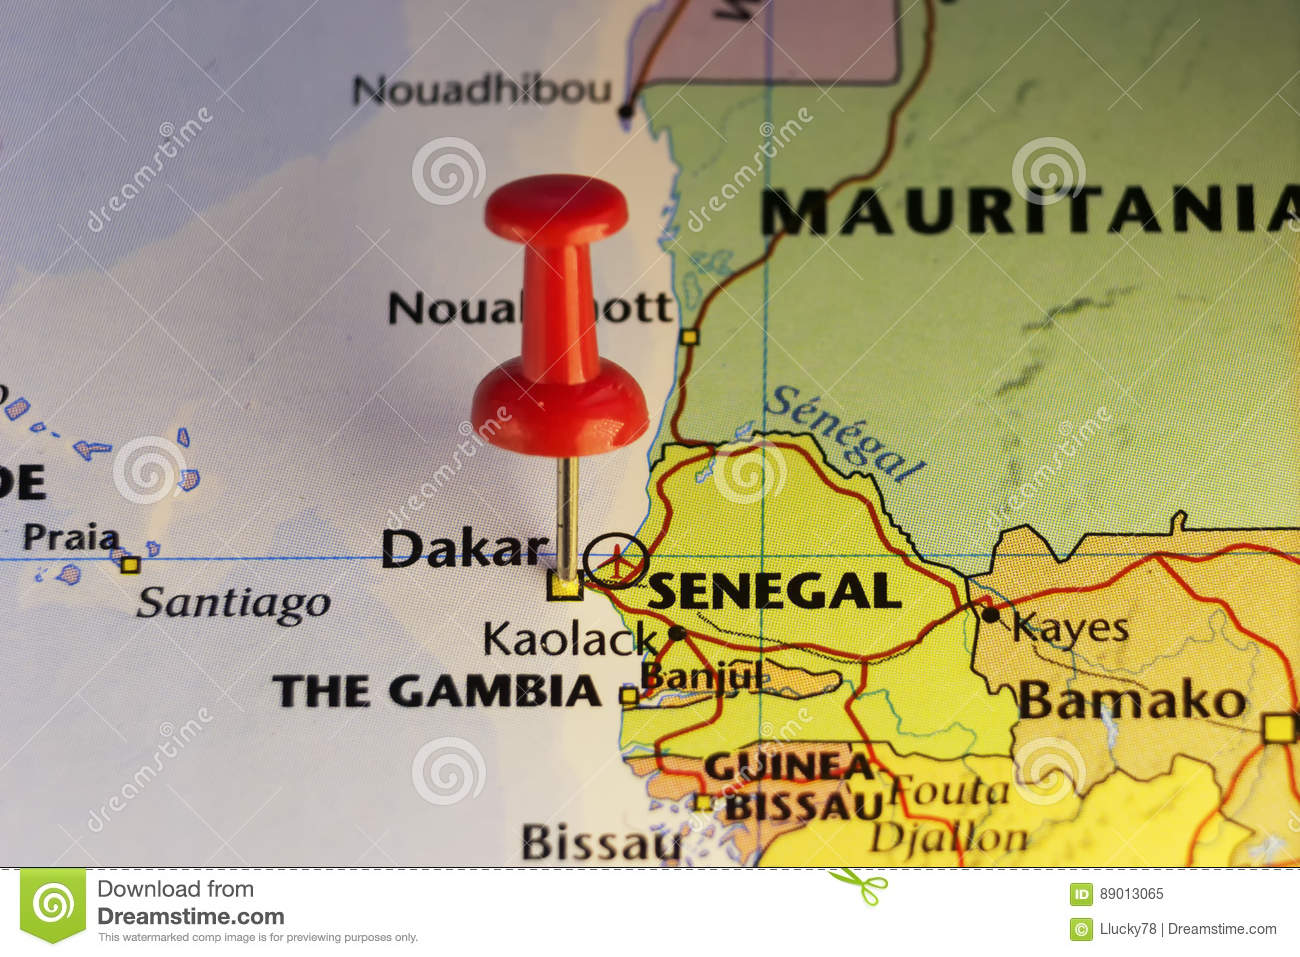 Dakar Pinned Map, Capital Of Senegal Stock Illustration ... on